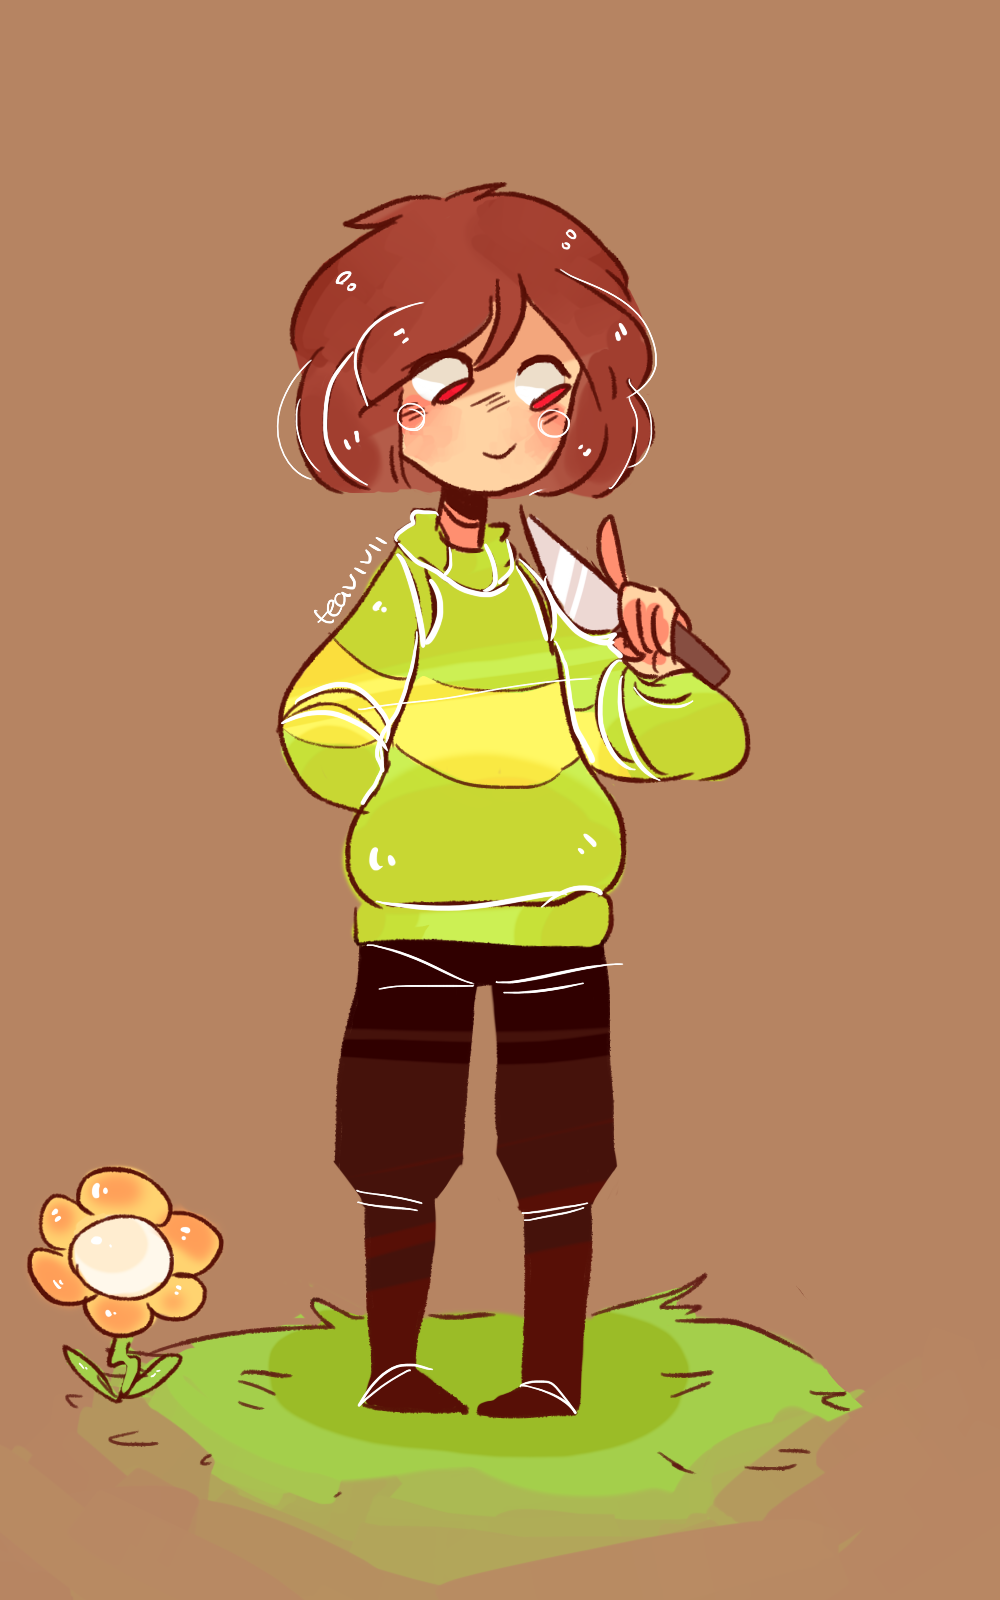 """Hi, I'm Chara. The nice one not the demon one. I can have a bit of a cruel streak but most of the time I'm nice, make puns and narrate what's going on like I did during Frisk's pacifist run. I like dogs and reading, I don't like humanity. I am looking foreward to meeting all of you"""